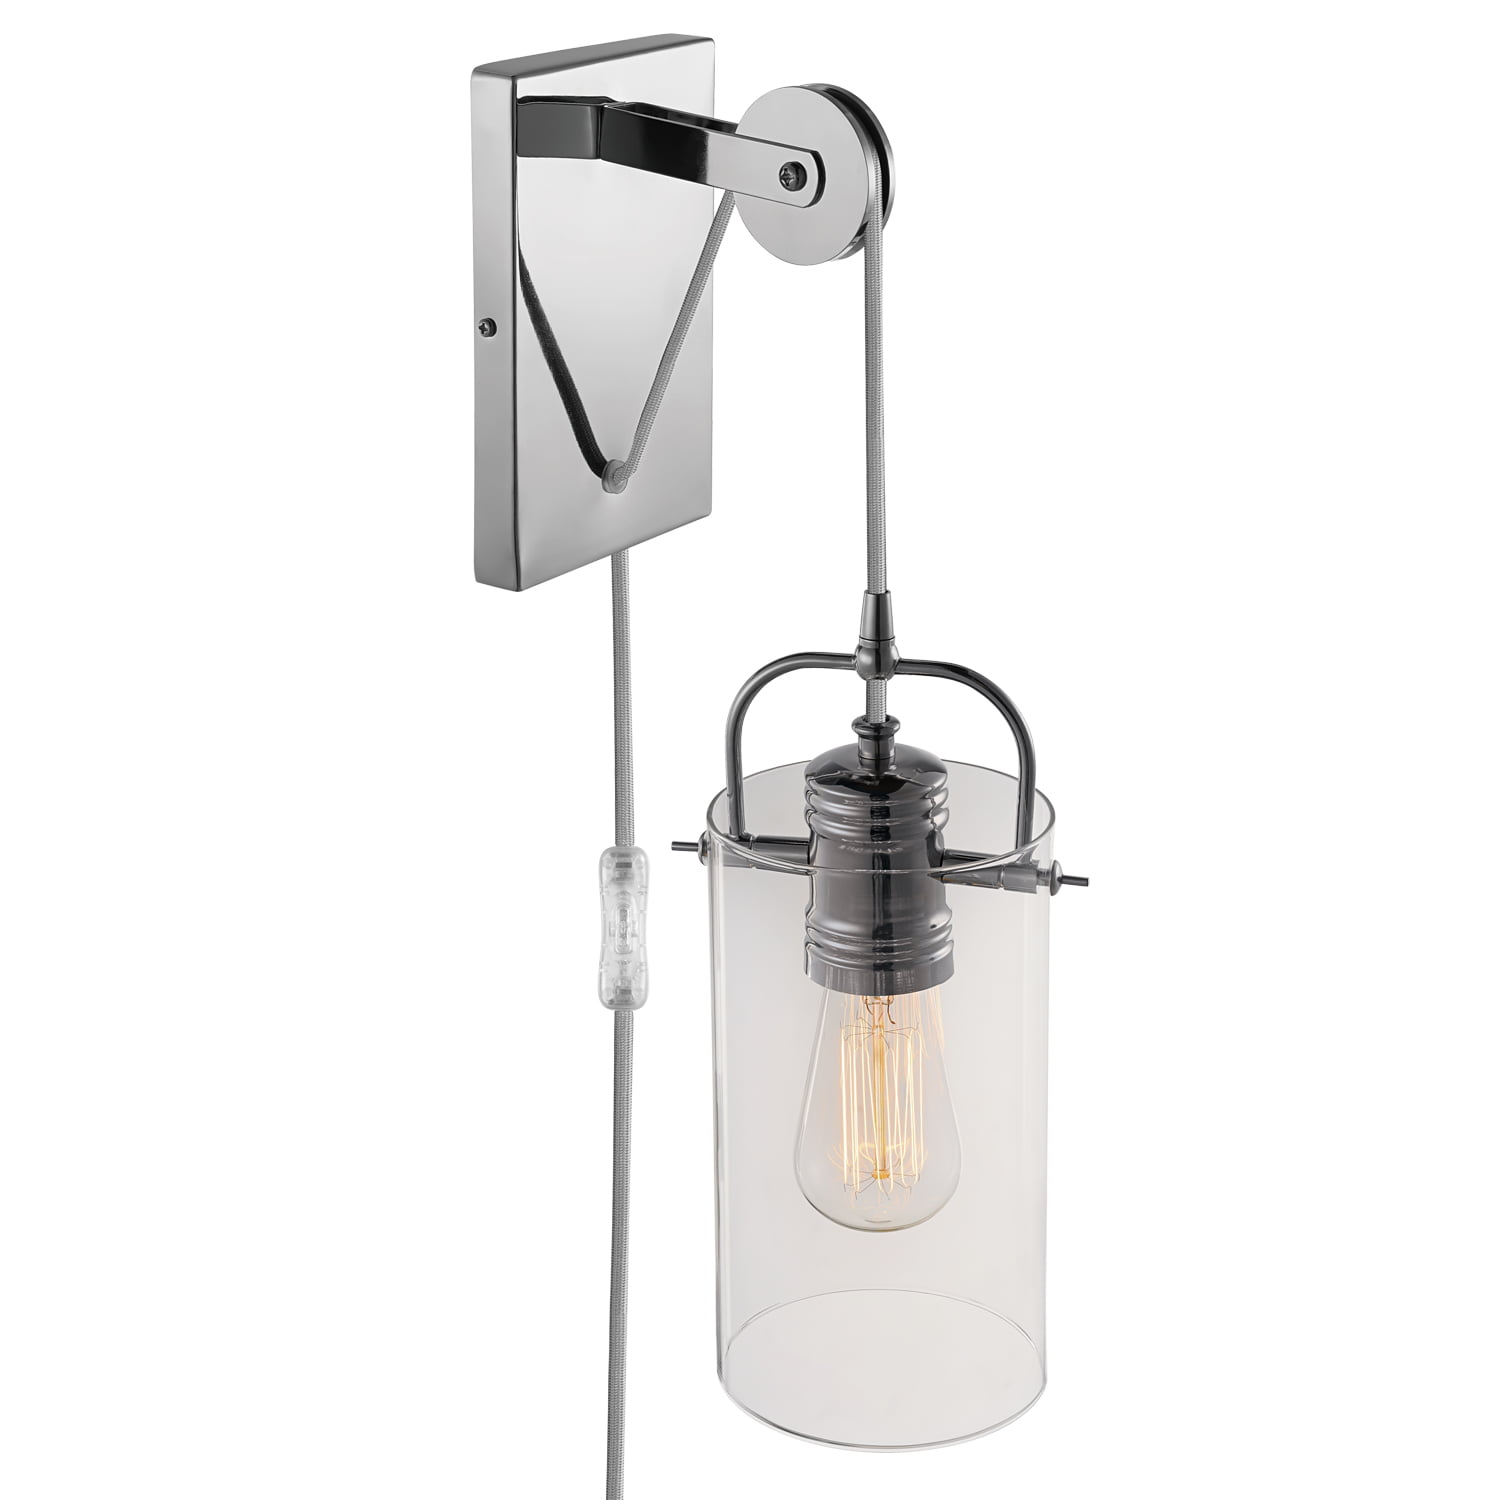 Globe Electric 60 Watt Nordhaven 1-Light Chrome Plug-In or Hardwire Wall Sconce by Globe Electric